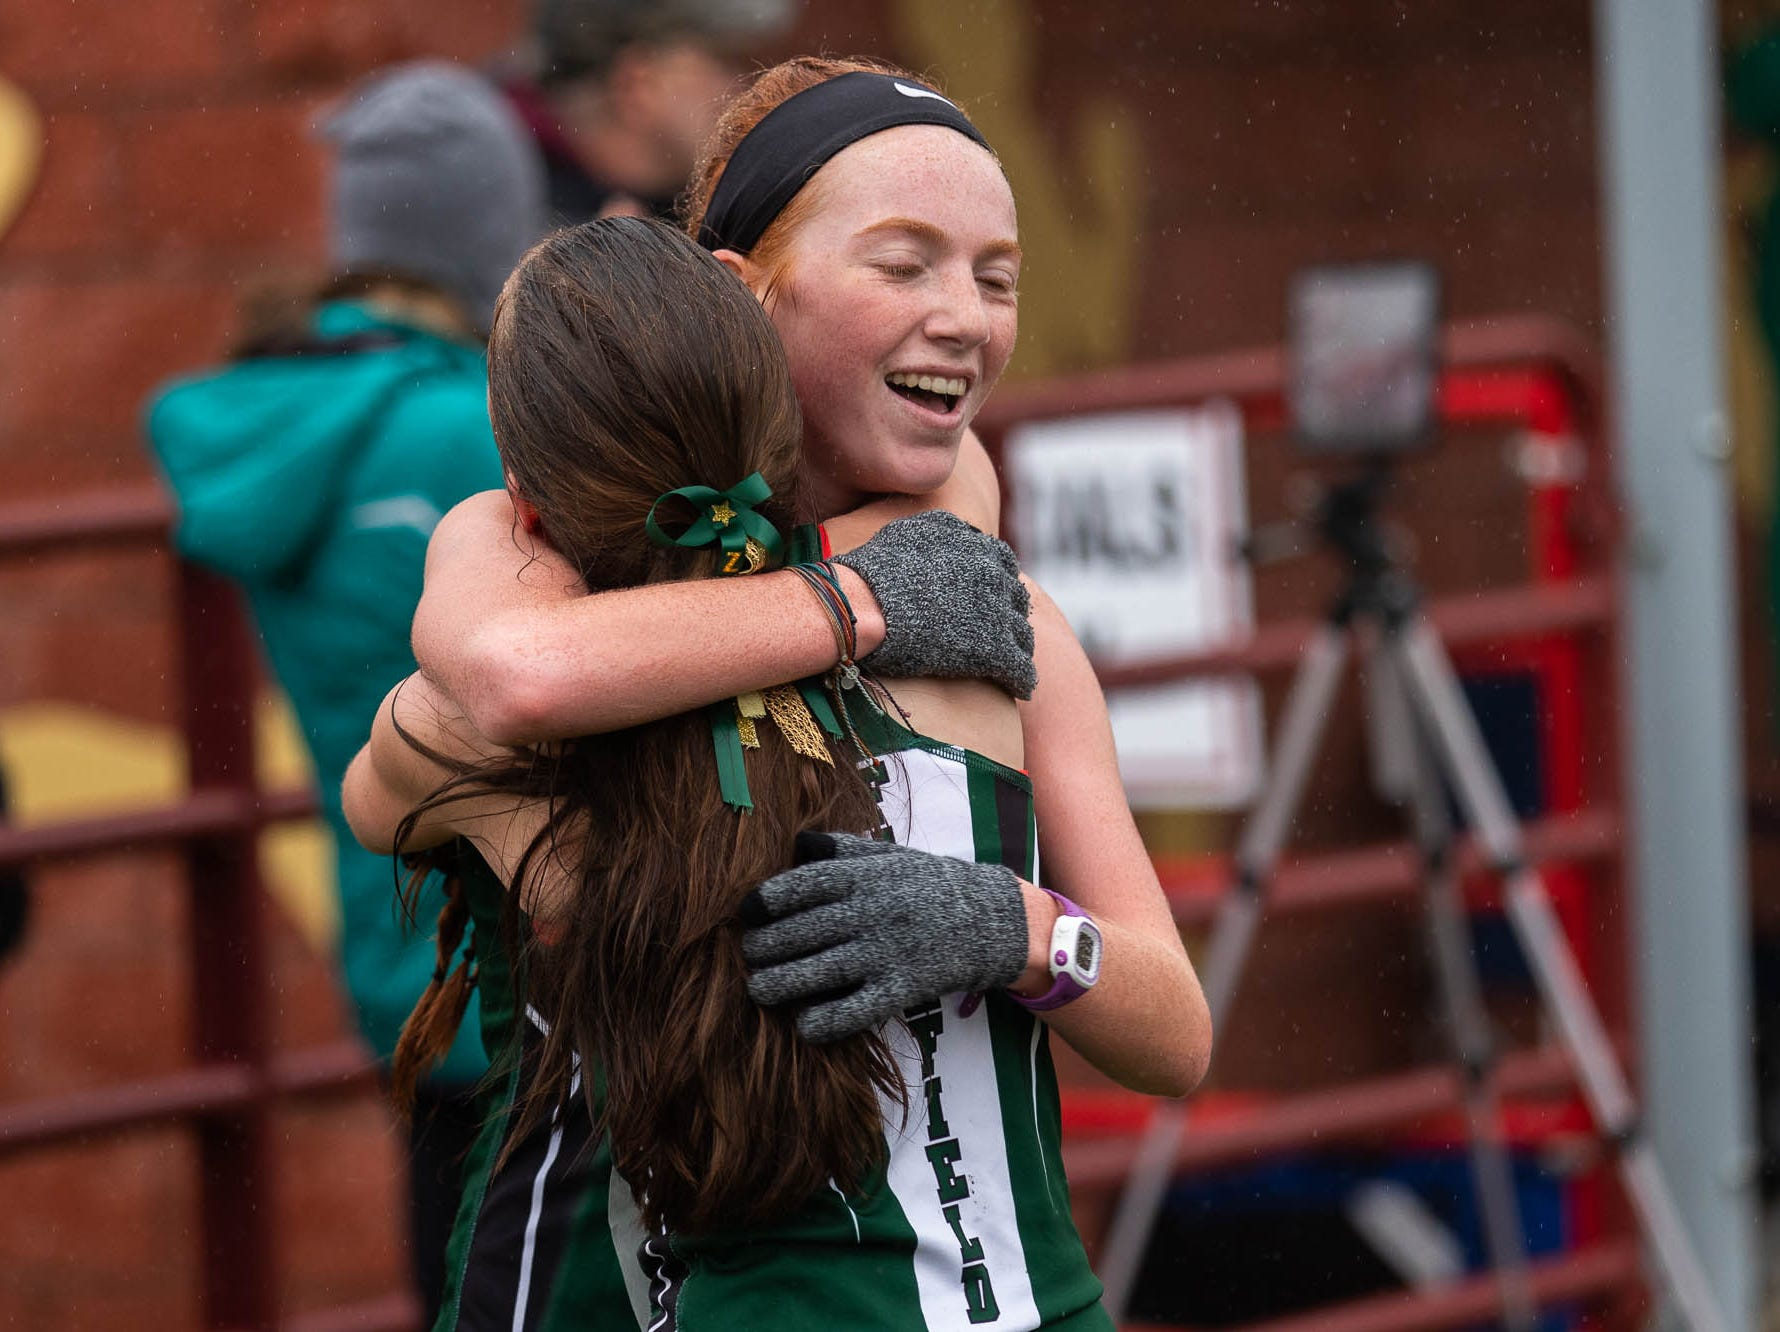 Fairfield's Zoey Kline and Haley Hebenton embrace after finishing 34rd and 35th in the Girls A race during the PIAA District III Cross Country Championship, Saturday, Oct. 27, 2018, at Big Spring High School in Newville.